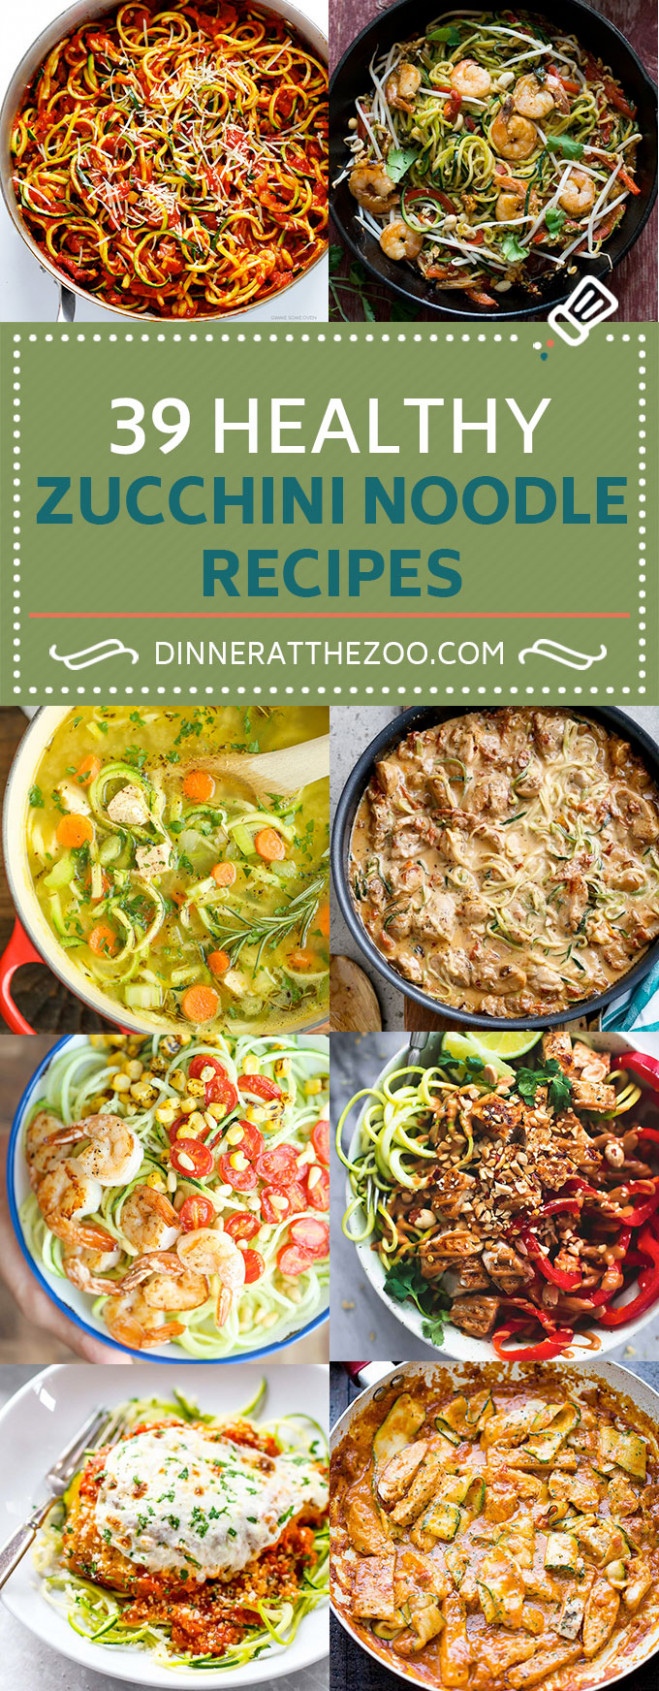 14 Healthy Zoodle (Zucchini Noodle) Recipes - Dinner at the Zoo - zucchini noodle recipes vegetarian